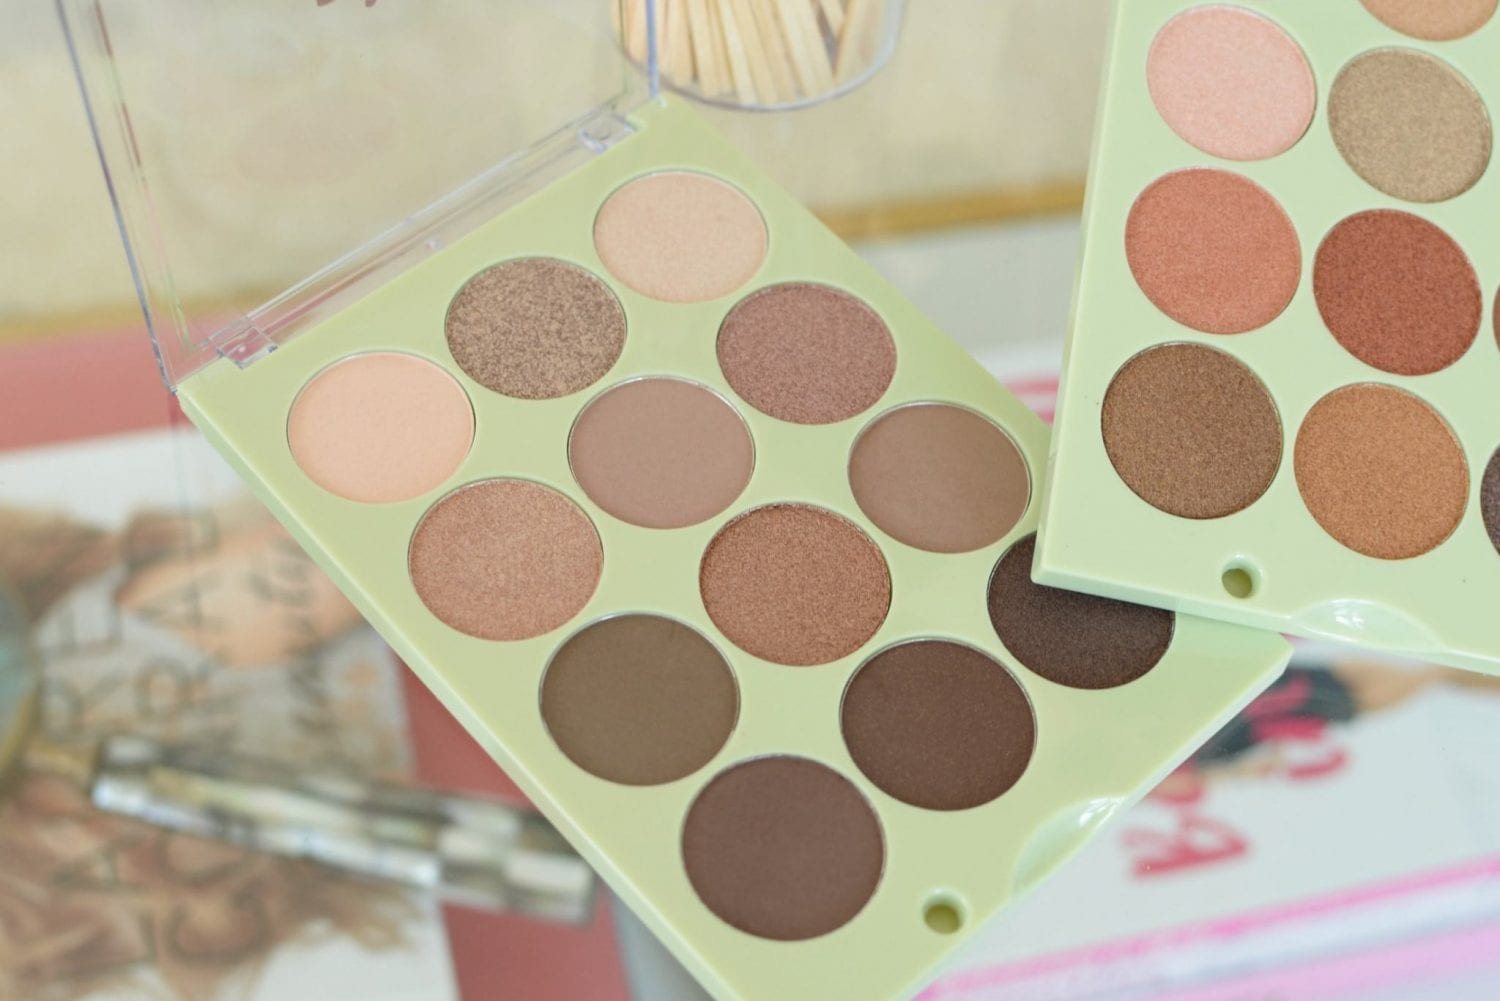 Pixi by Petra Eye Reflection Shadow Palette in Natural Beauty